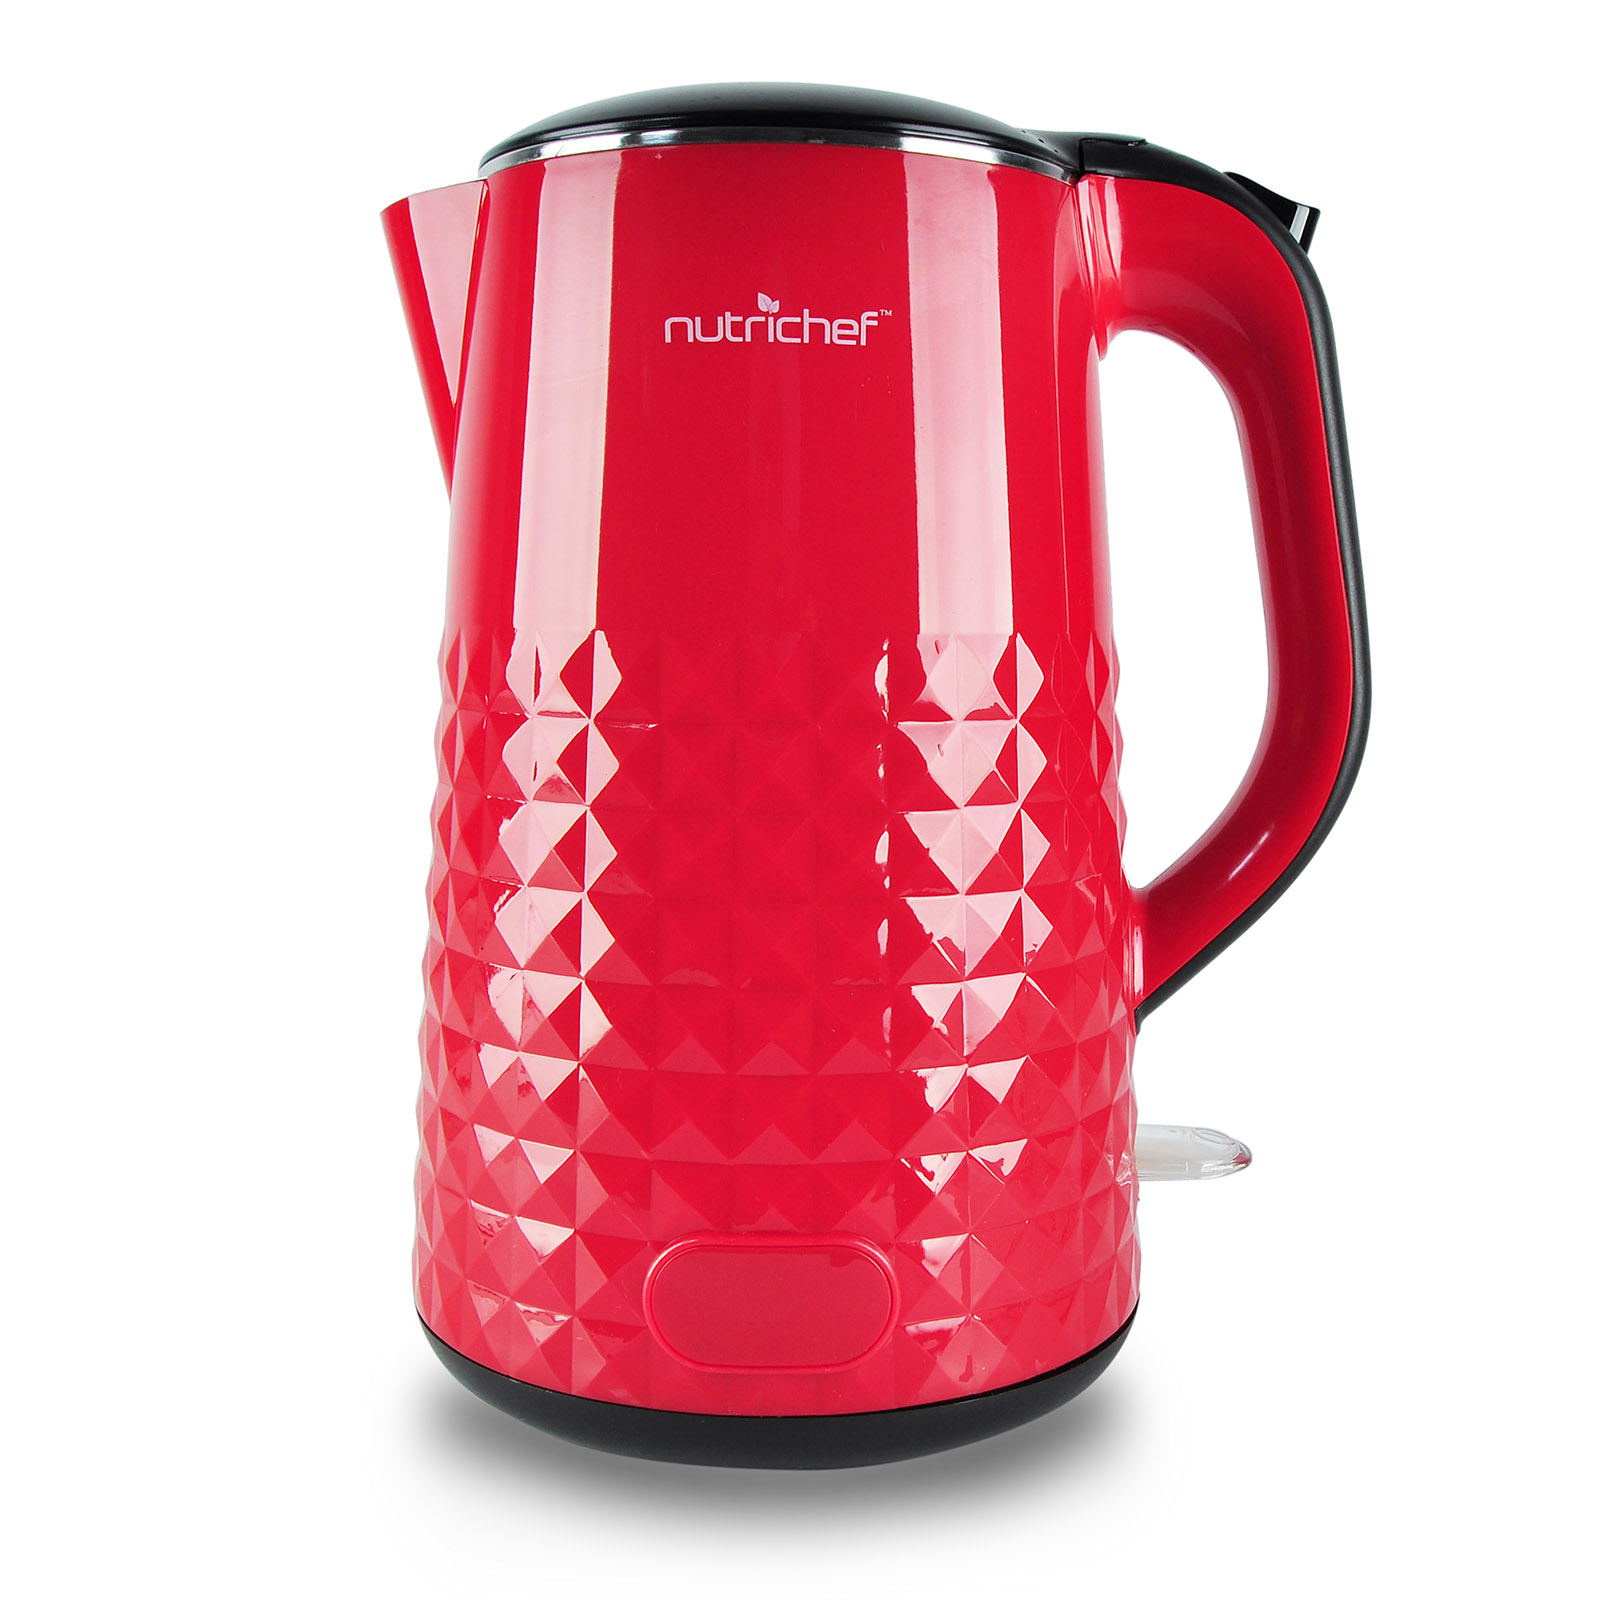 NutriChef Electric Kitchen Kettle, Cordless Water Boiling Hot Pot